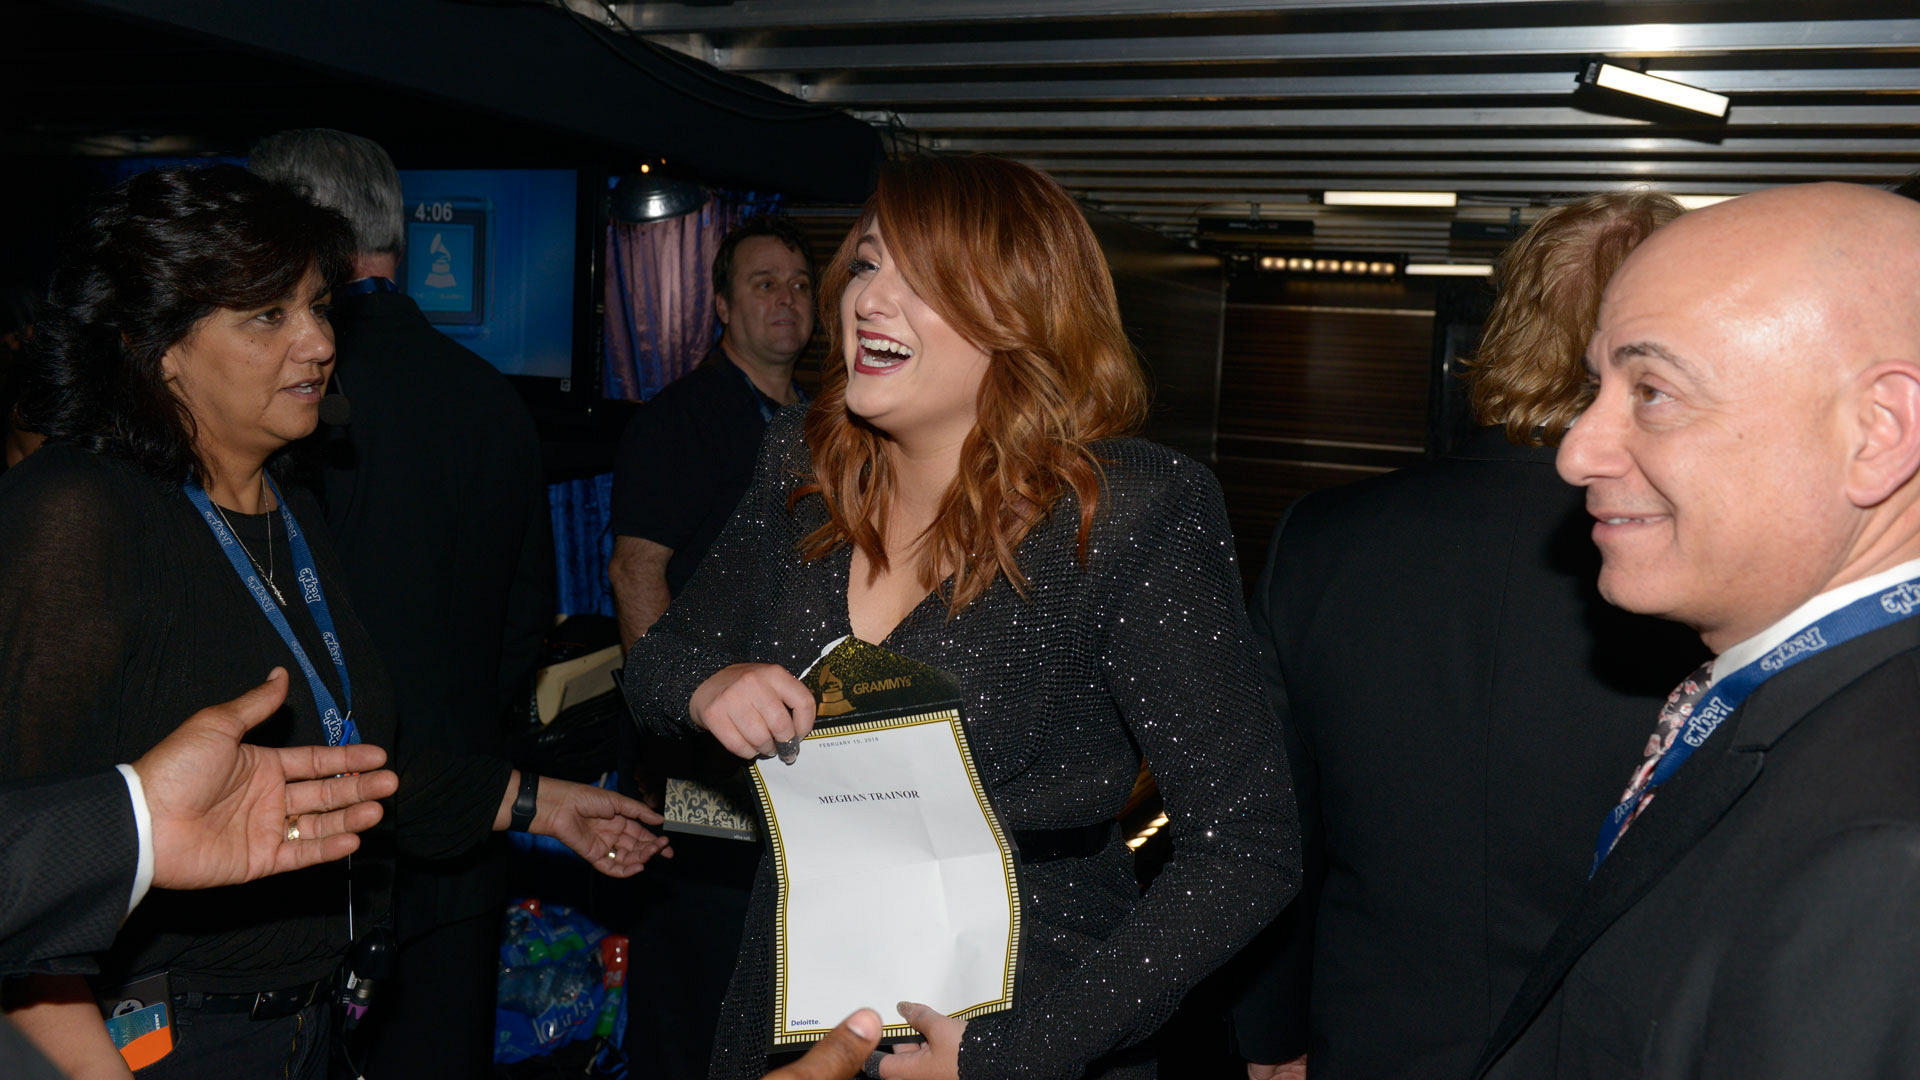 Meghan Trainor cries tears of joy after her Best New Artist GRAMMY win